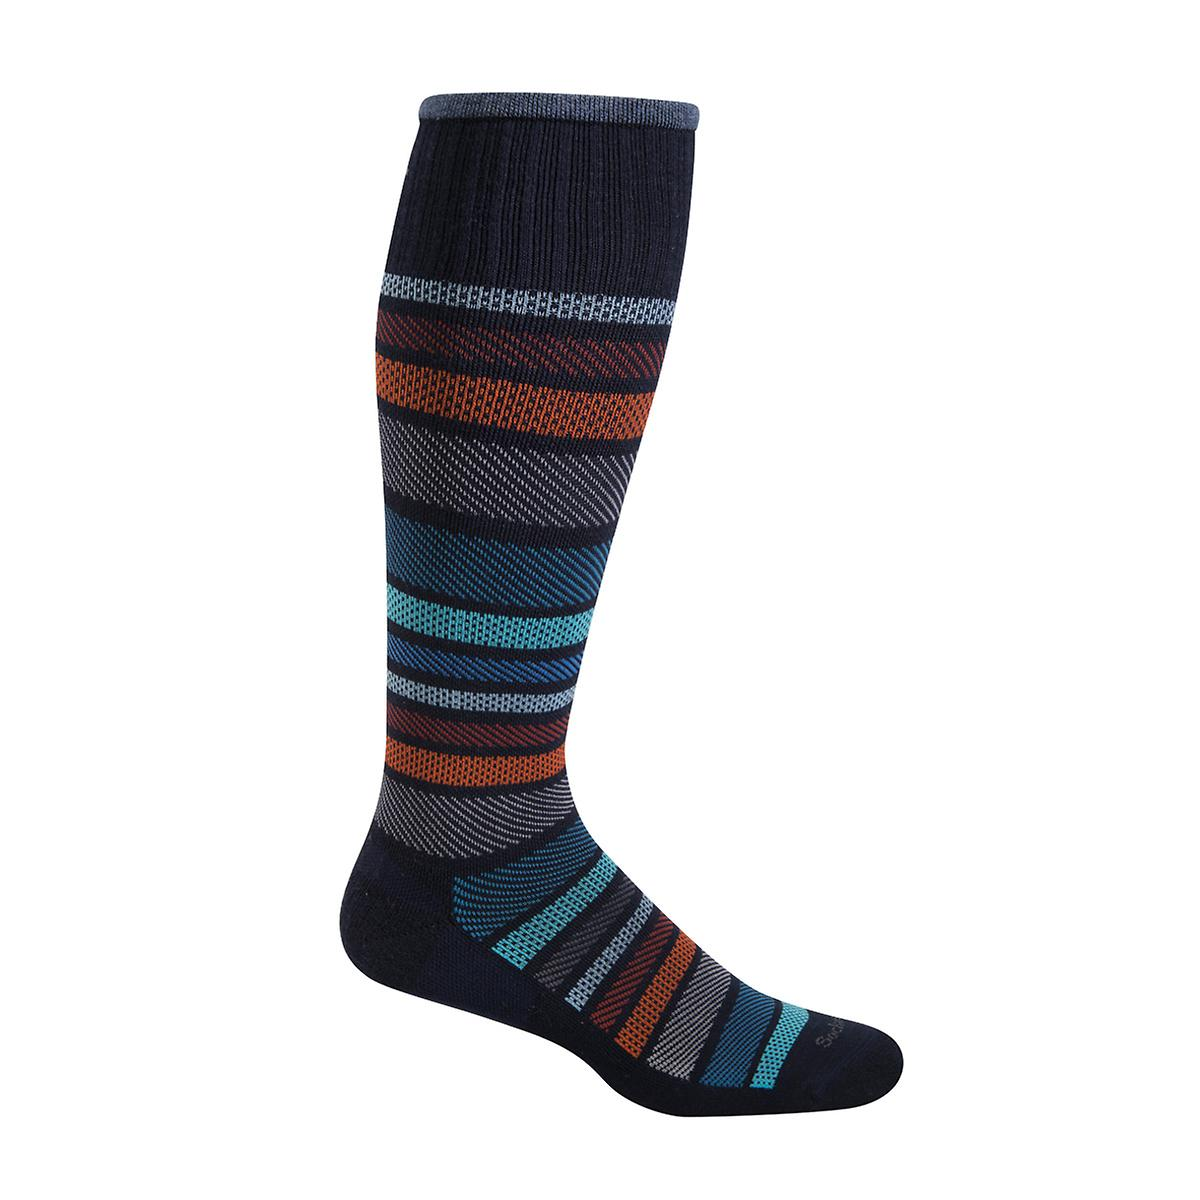 Large/X-Large Navy Twillful Compression Socks